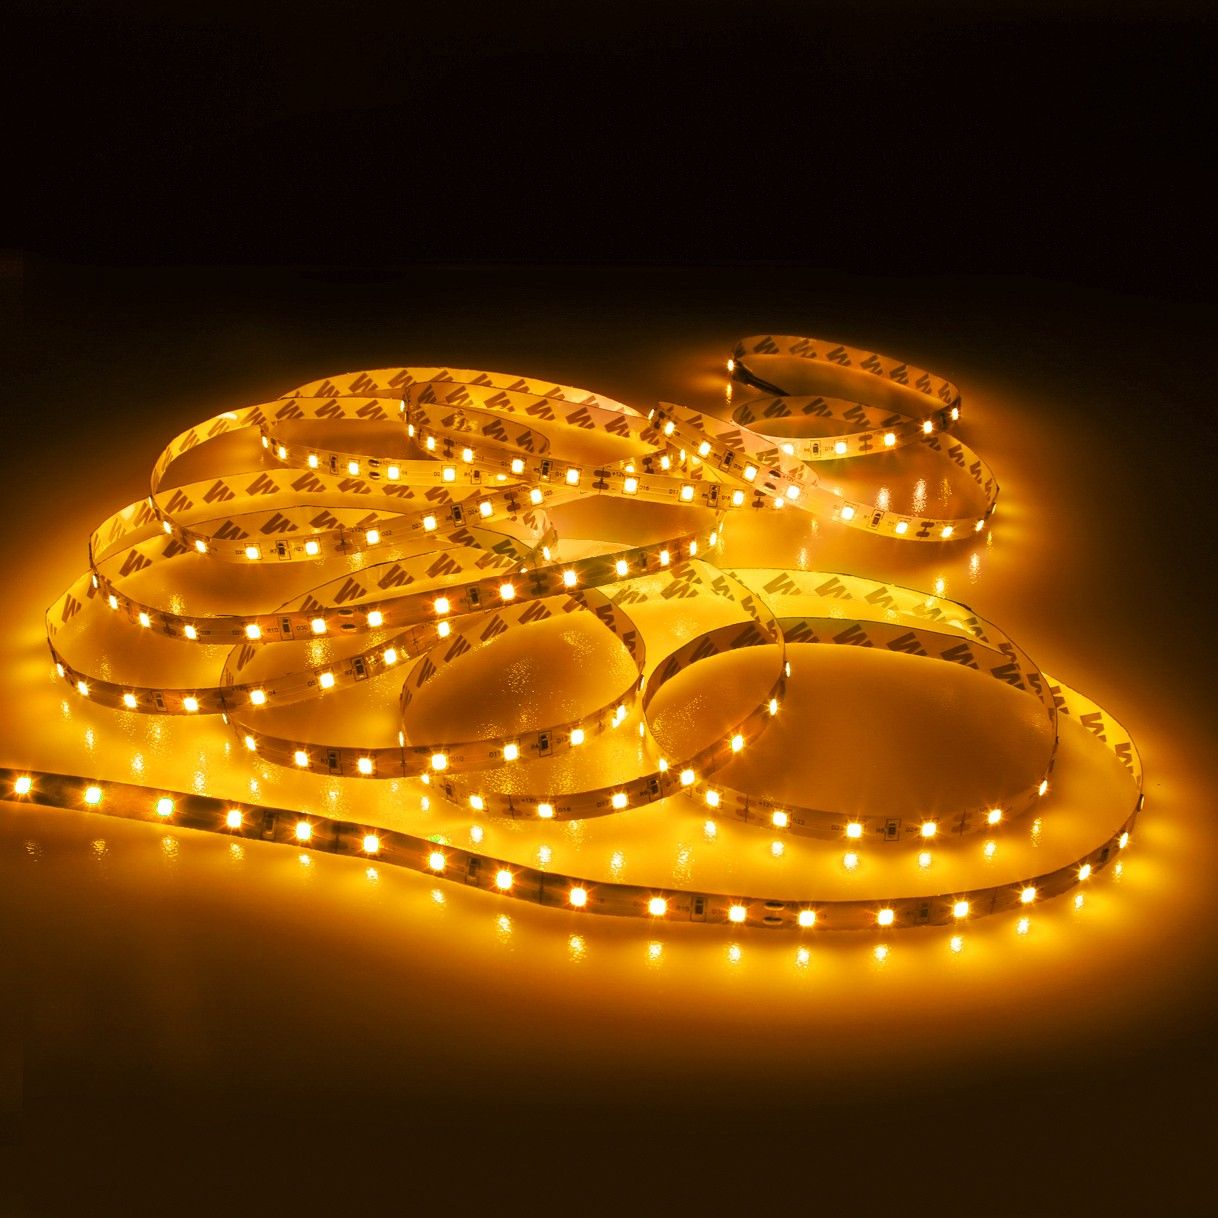 Le 12v Led Strip Light Flexible Smd 2835 16 4ft Tape Light For Home Kitchen Party Christmas And More Non Waterproof Warm White 12v Led Strip Lights Led Strip Lighting Strip Lighting